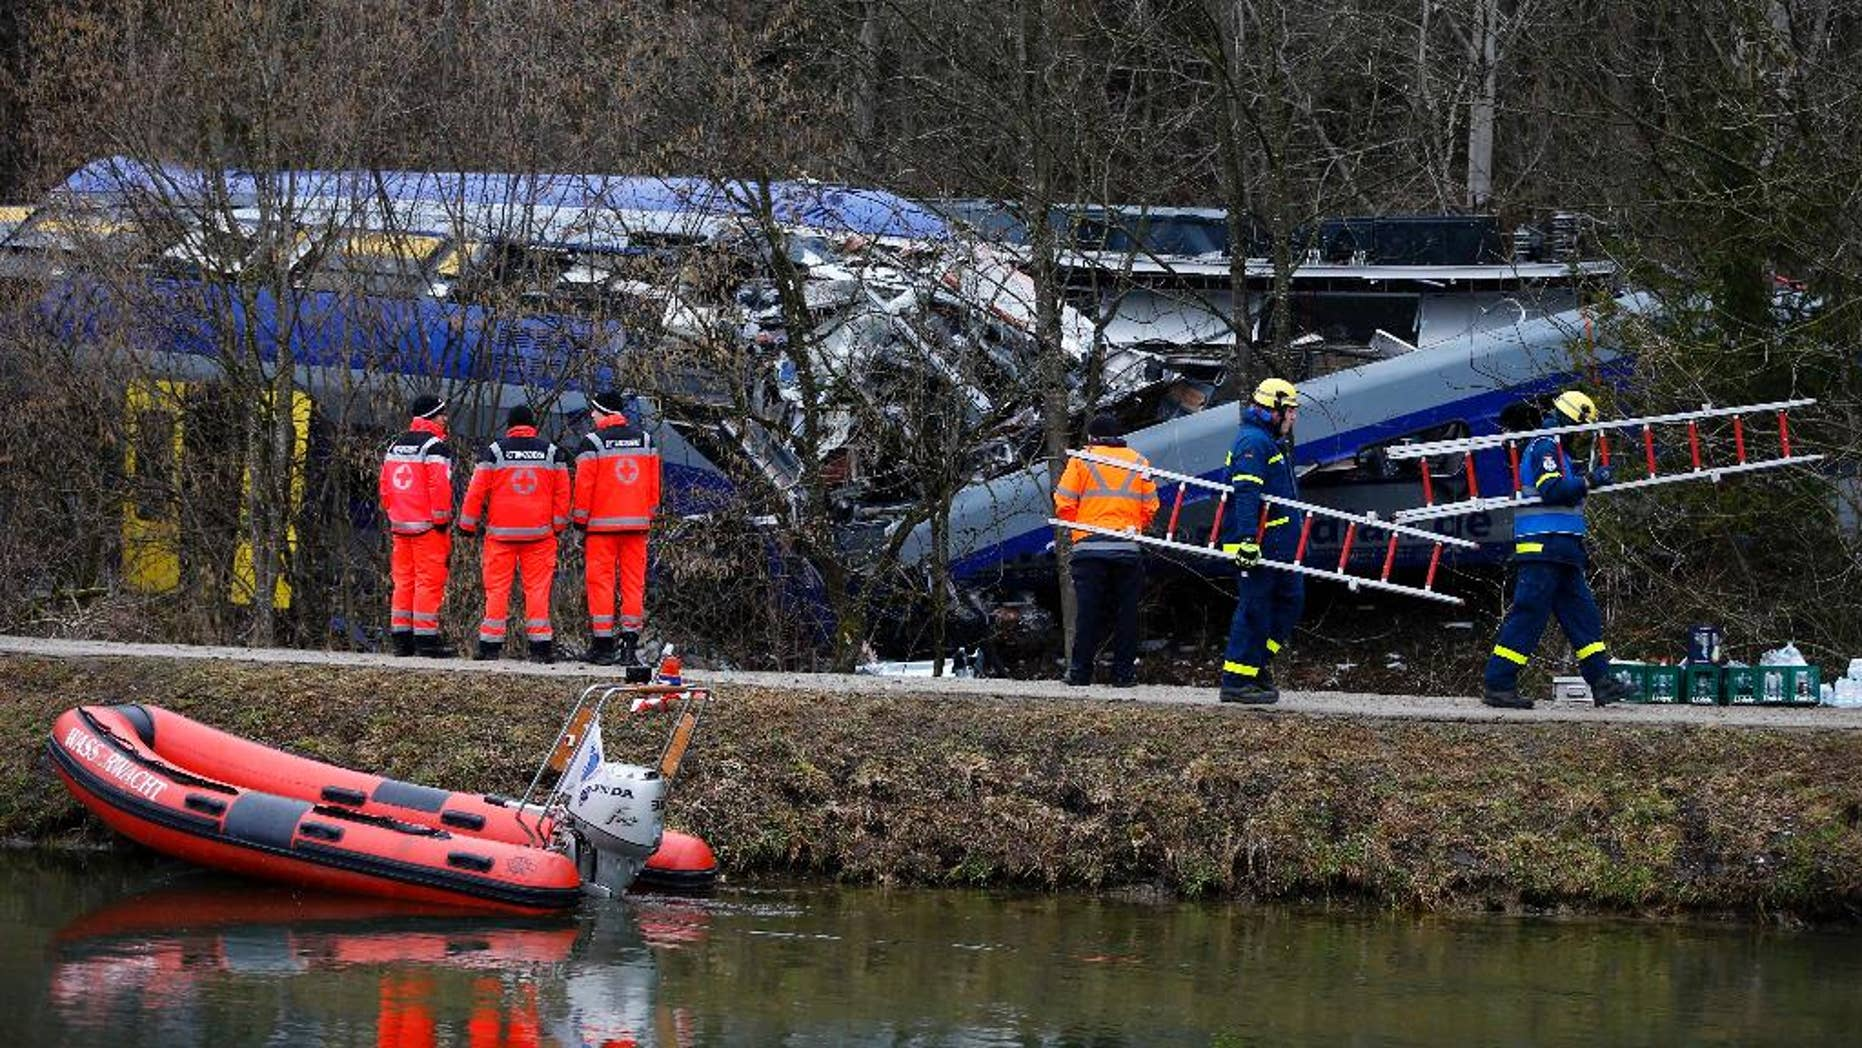 FILE - In this Feb. 10, 2016 file picture rescue personnel stand in front of trains that collided head-on near Bad Aibling, Germany.  Prosecutors are seeking a four-year jail sentence for a train dispatcher accused of negligence that led to one of the worst train crashes in Germany history earlier this year. Twelve people died and 89 people were injured when two commuter trains collided on a single track Feb. 9 near the Bavarian town of Bad Aibling,southeast of Munic. ( Photo/Matthias Schrader,file)